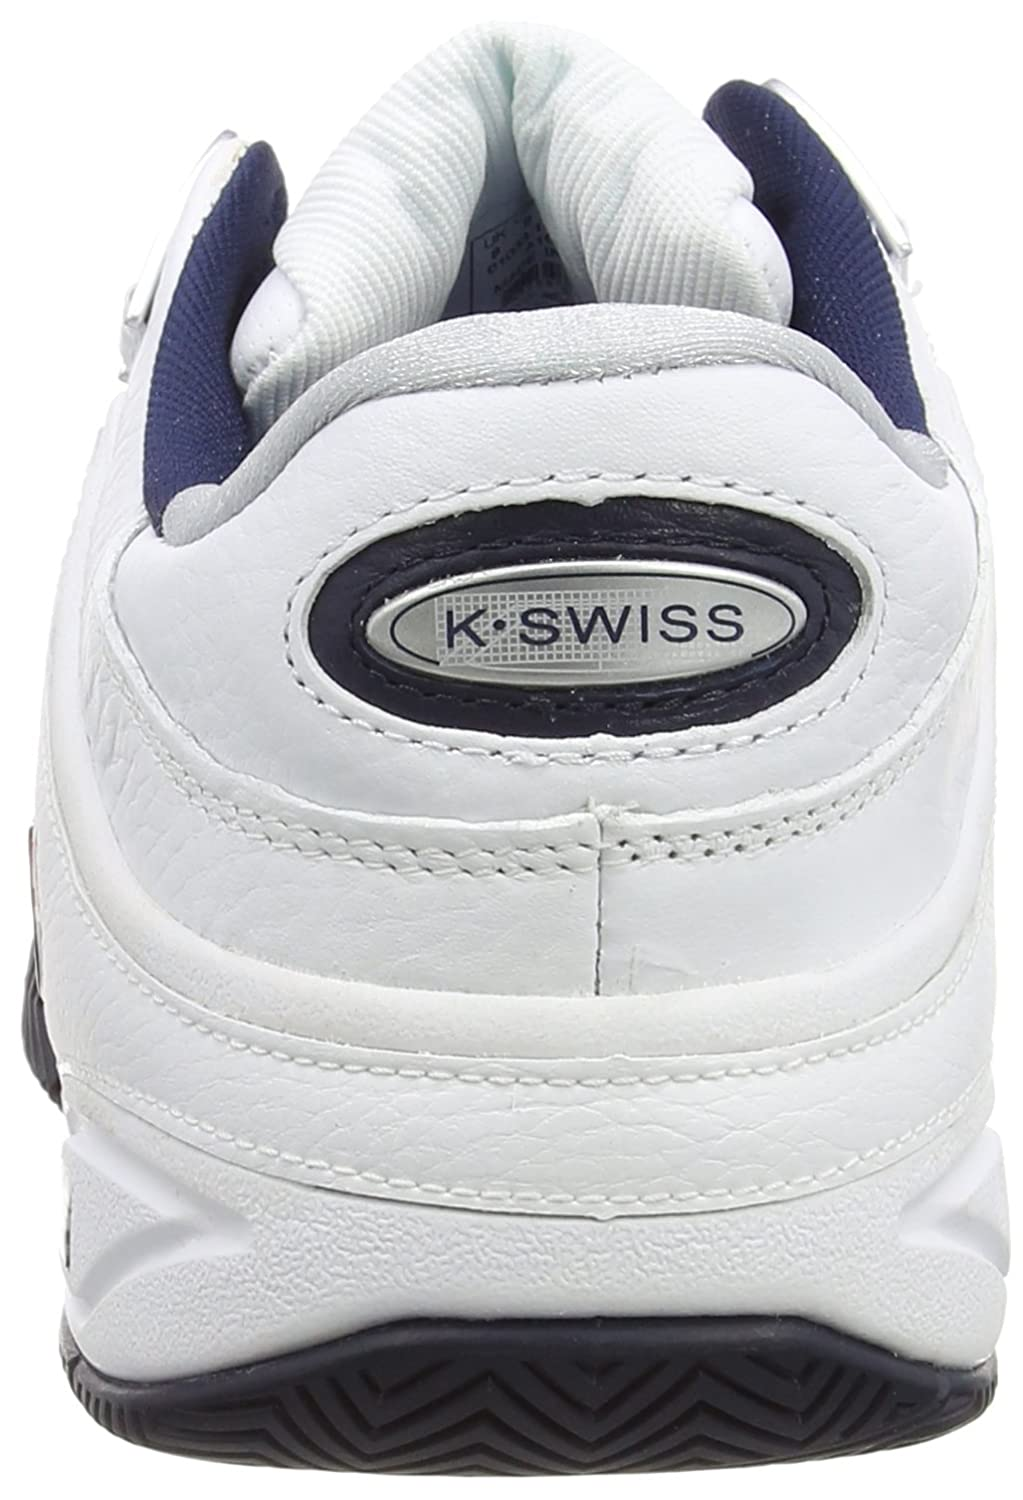 K-Swiss Defier RS Mens Tennis Shoes US10 White//Blue//Red